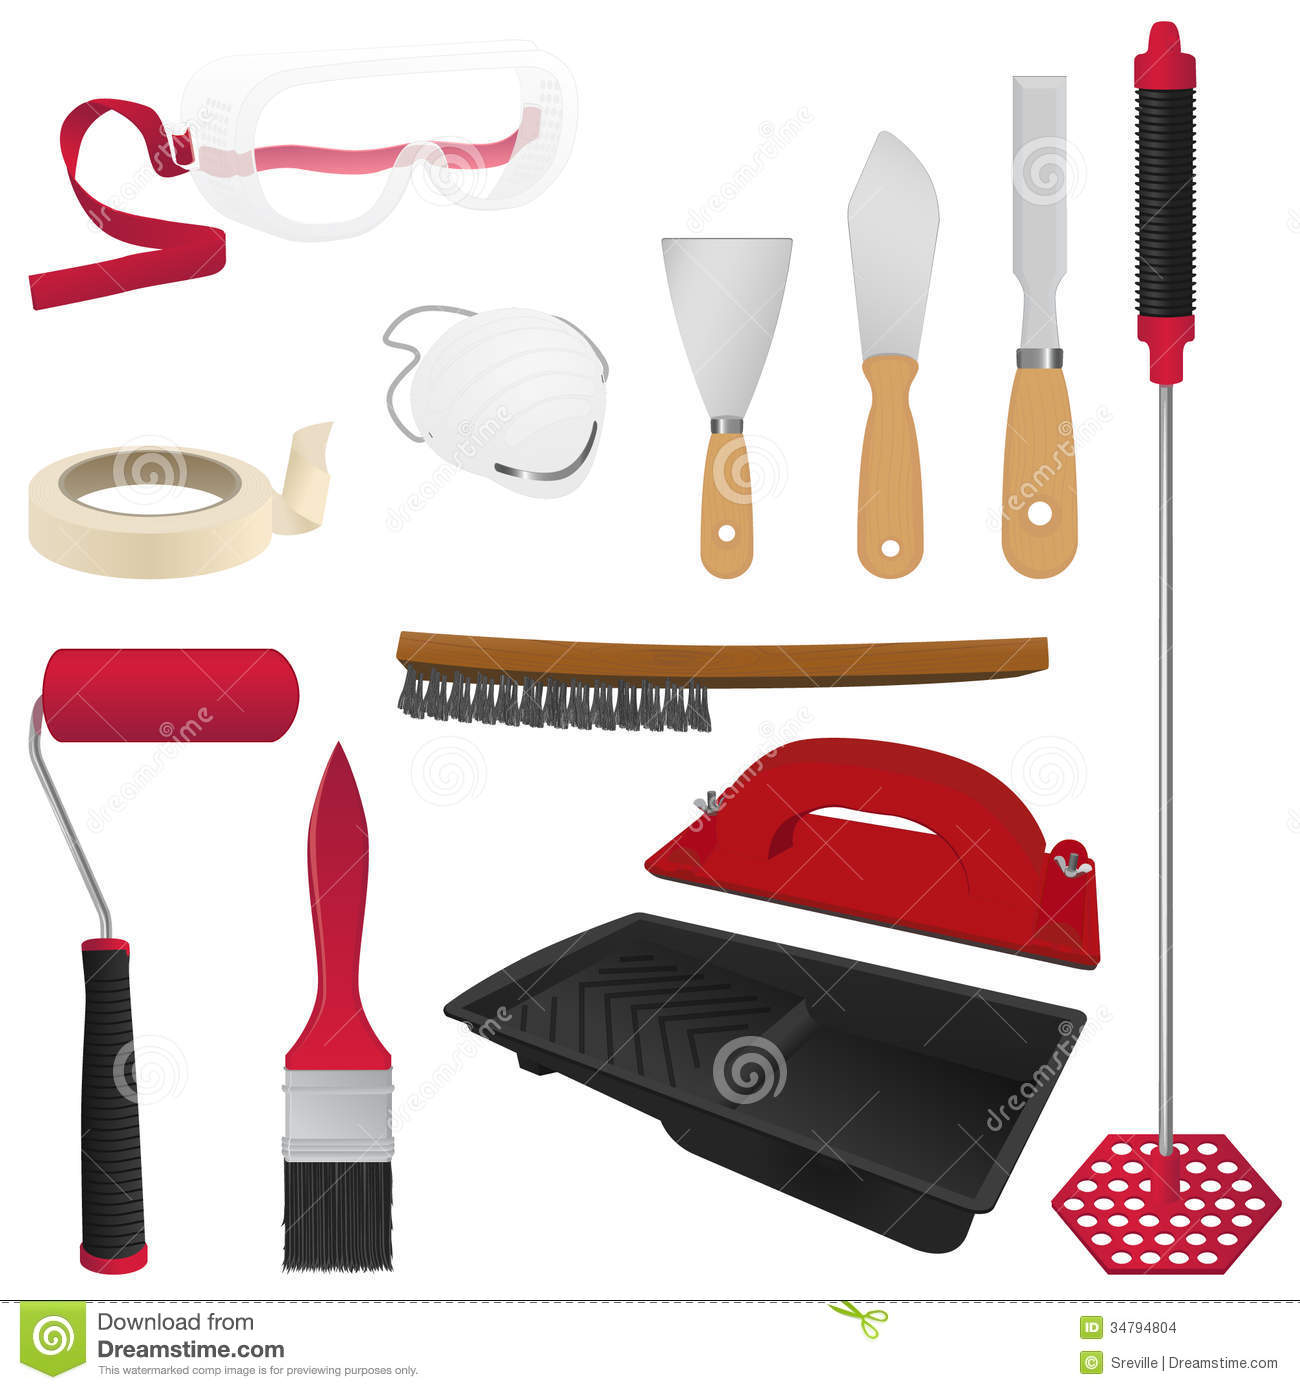 Painting tools stock images image 34794804 for Wall painting utensils